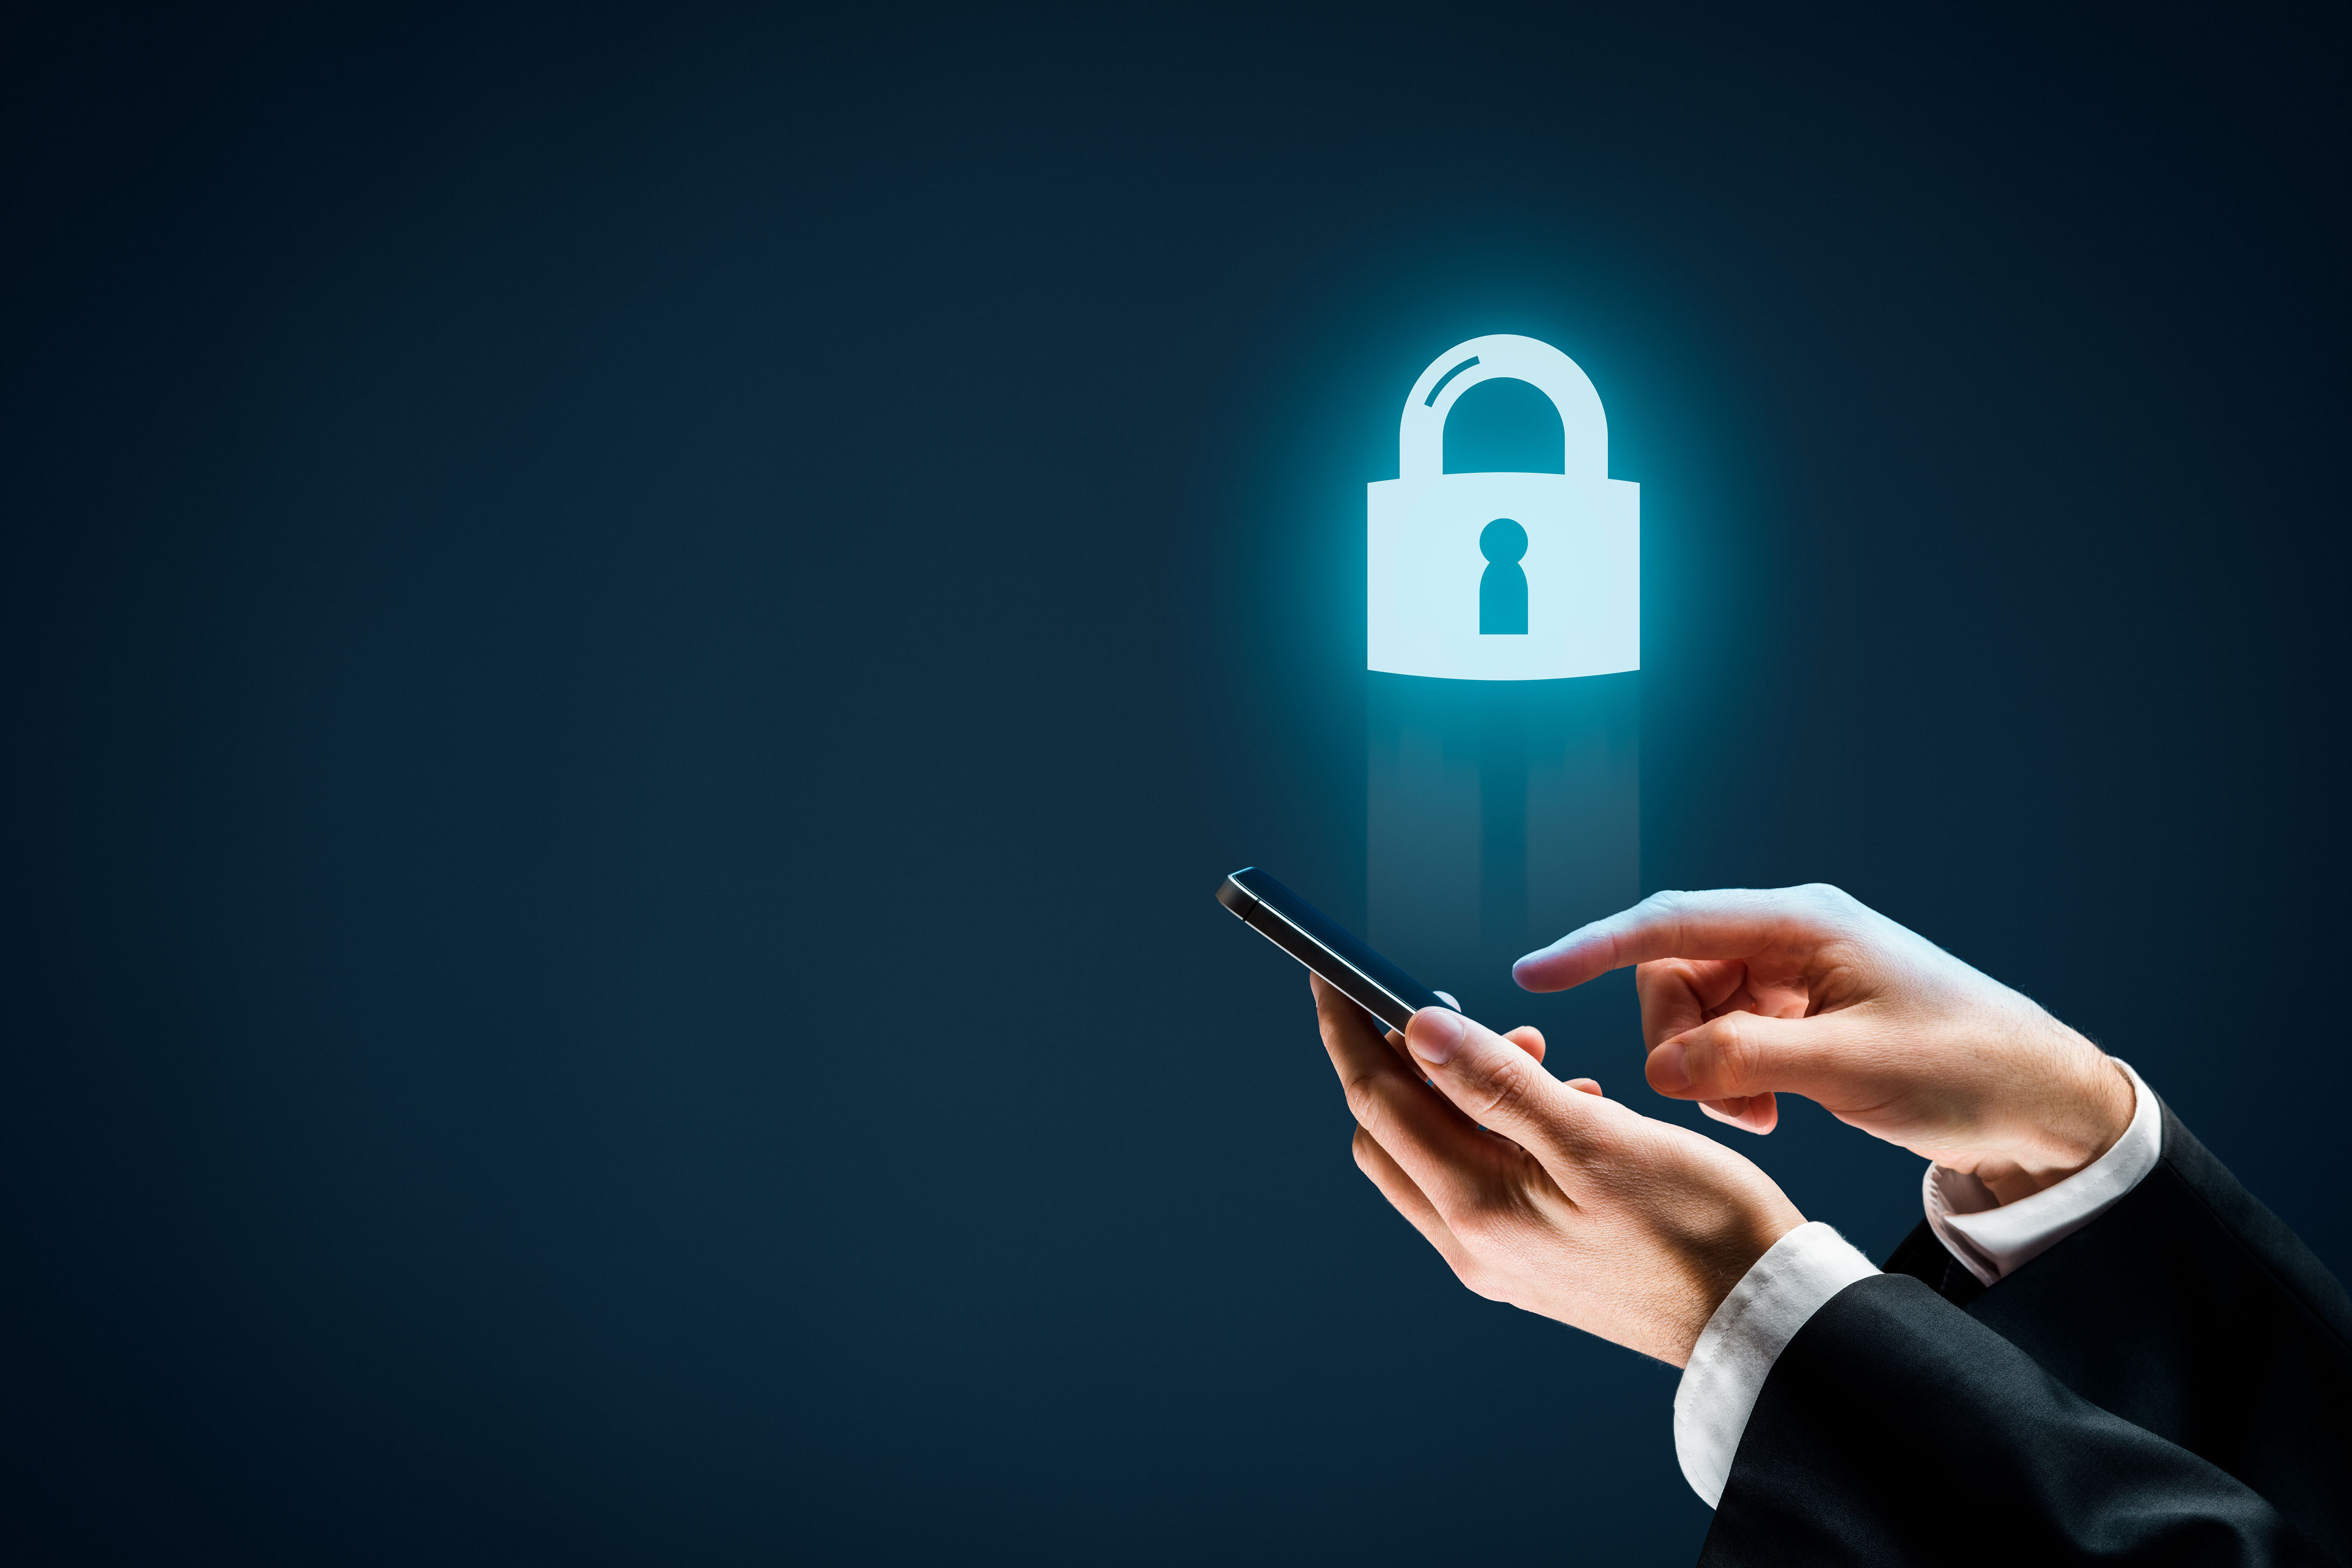 Tips To Help You Stay Ahead of Smartphone Hackers